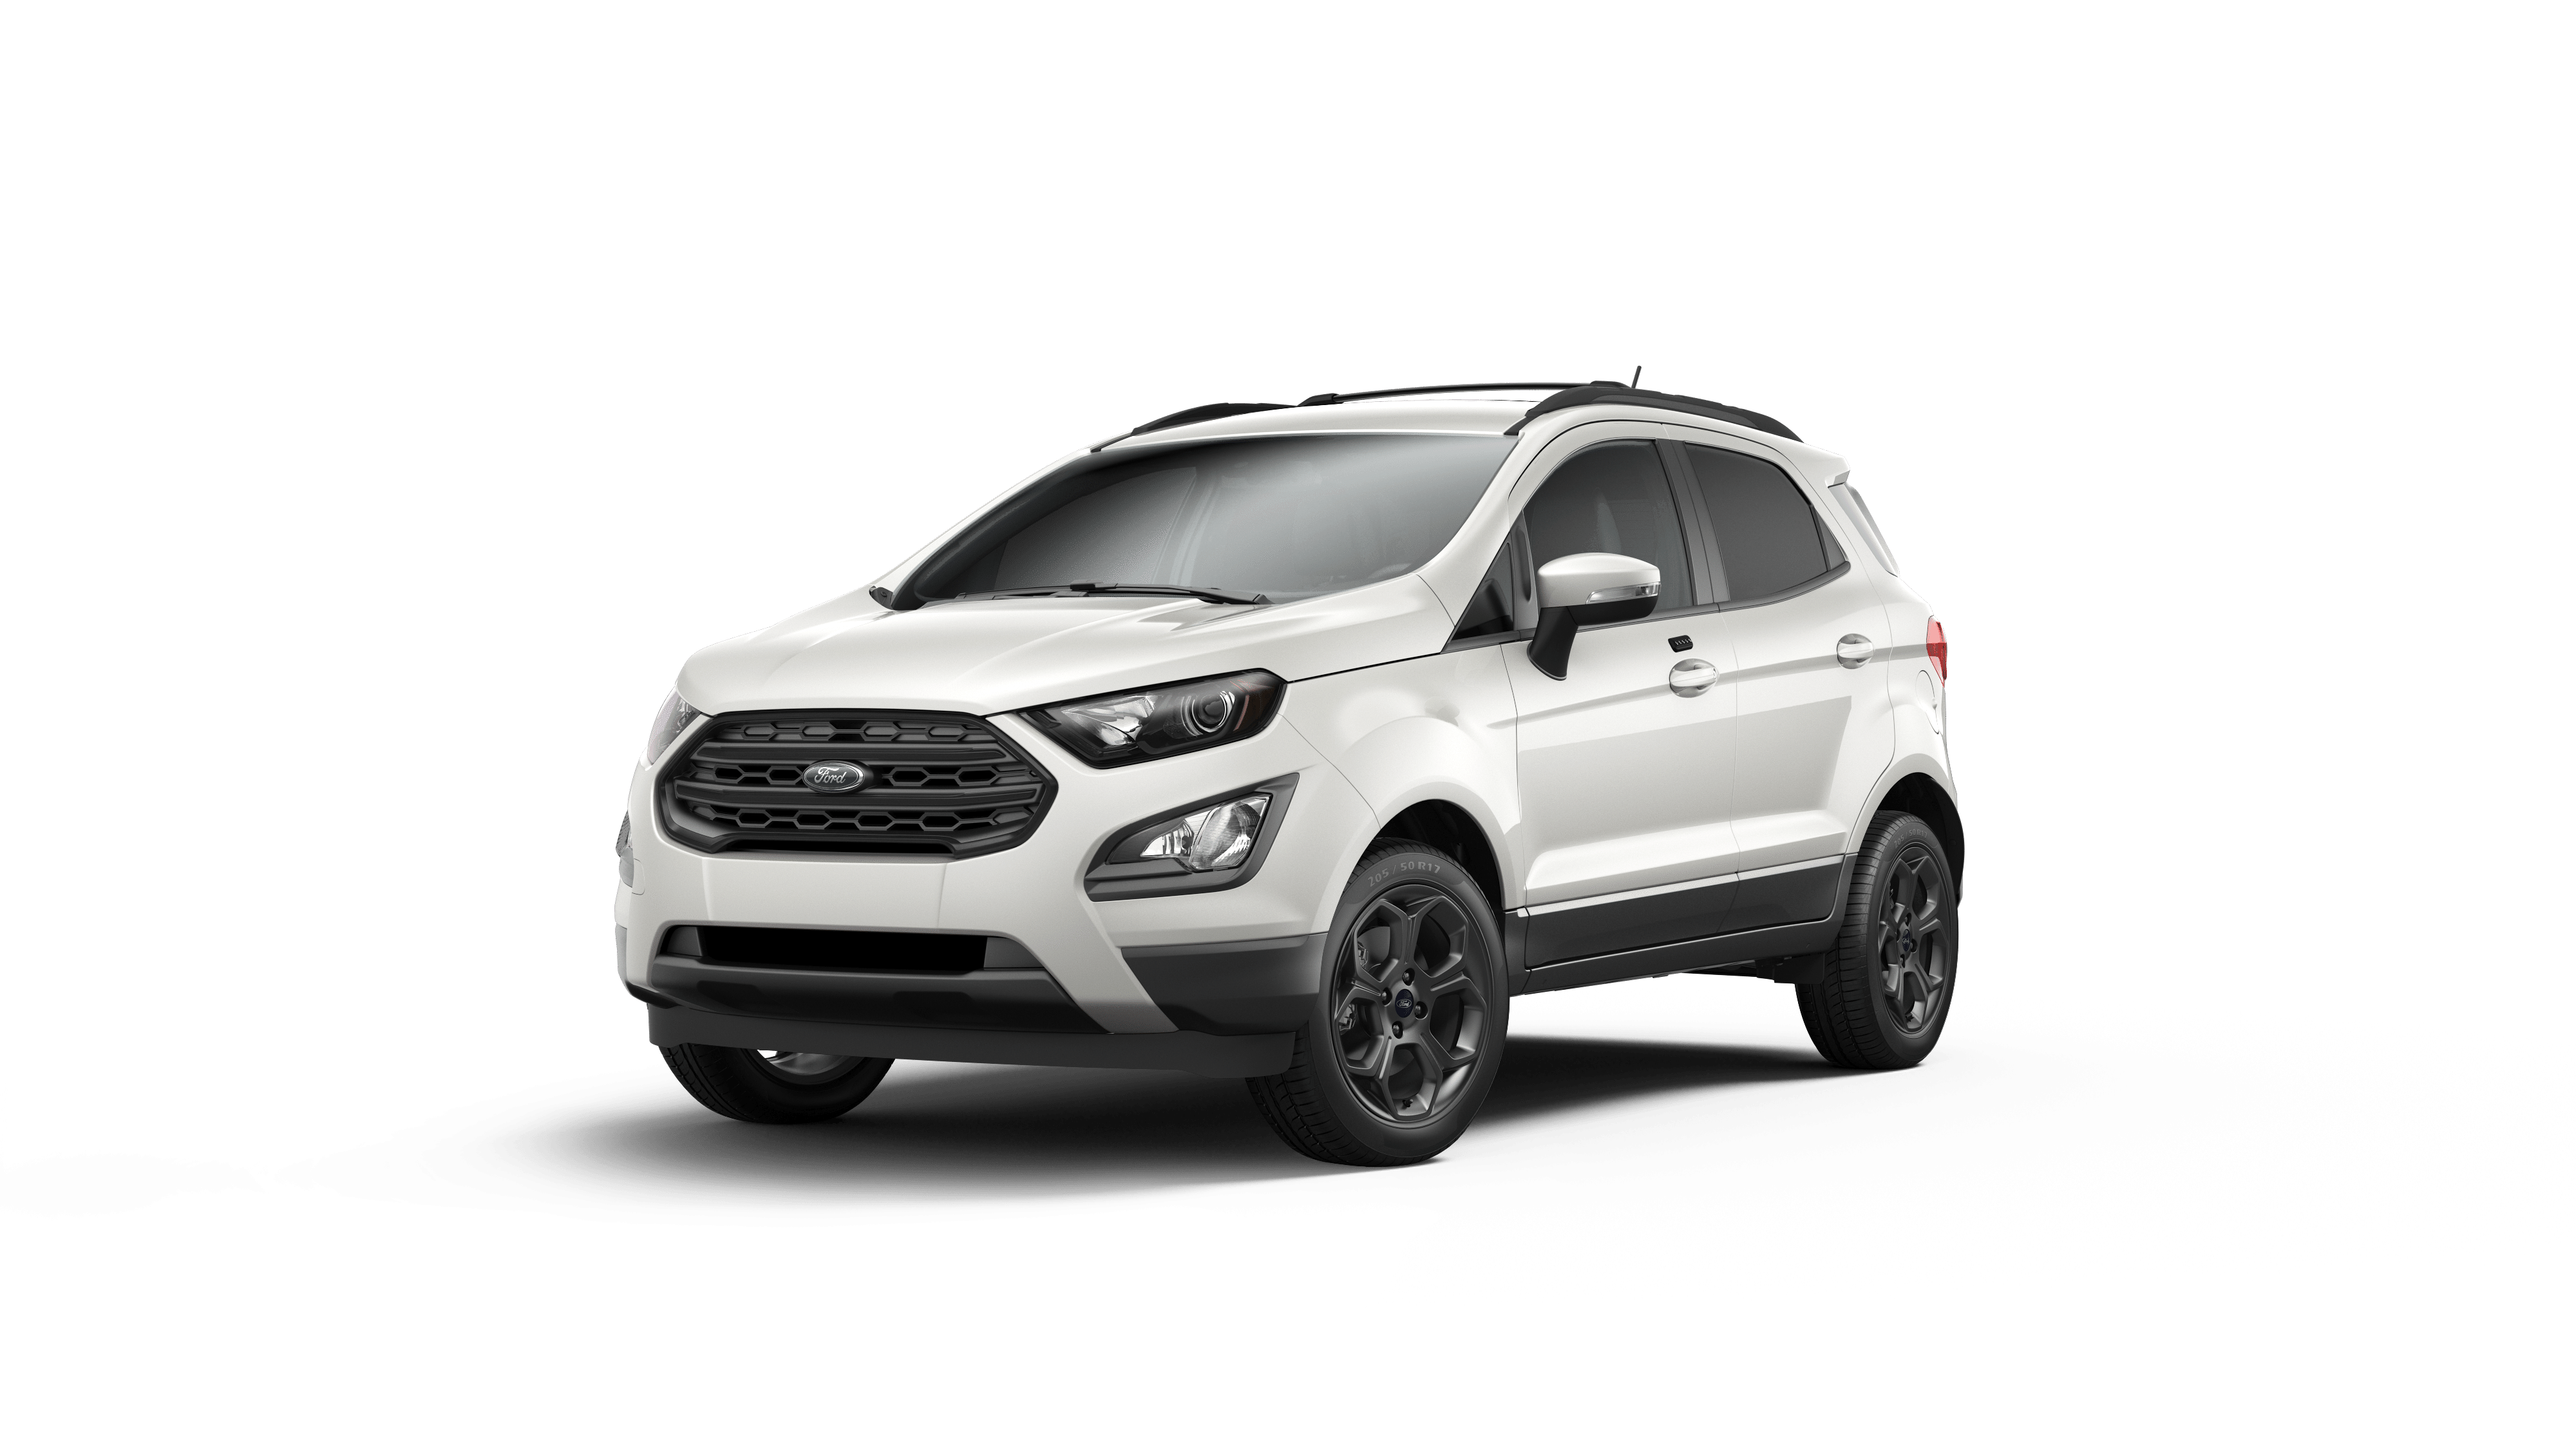 more halifax ma slider dealers day new used edge escape dealership f in fleet canada vehicles ford macphee ecosport ns